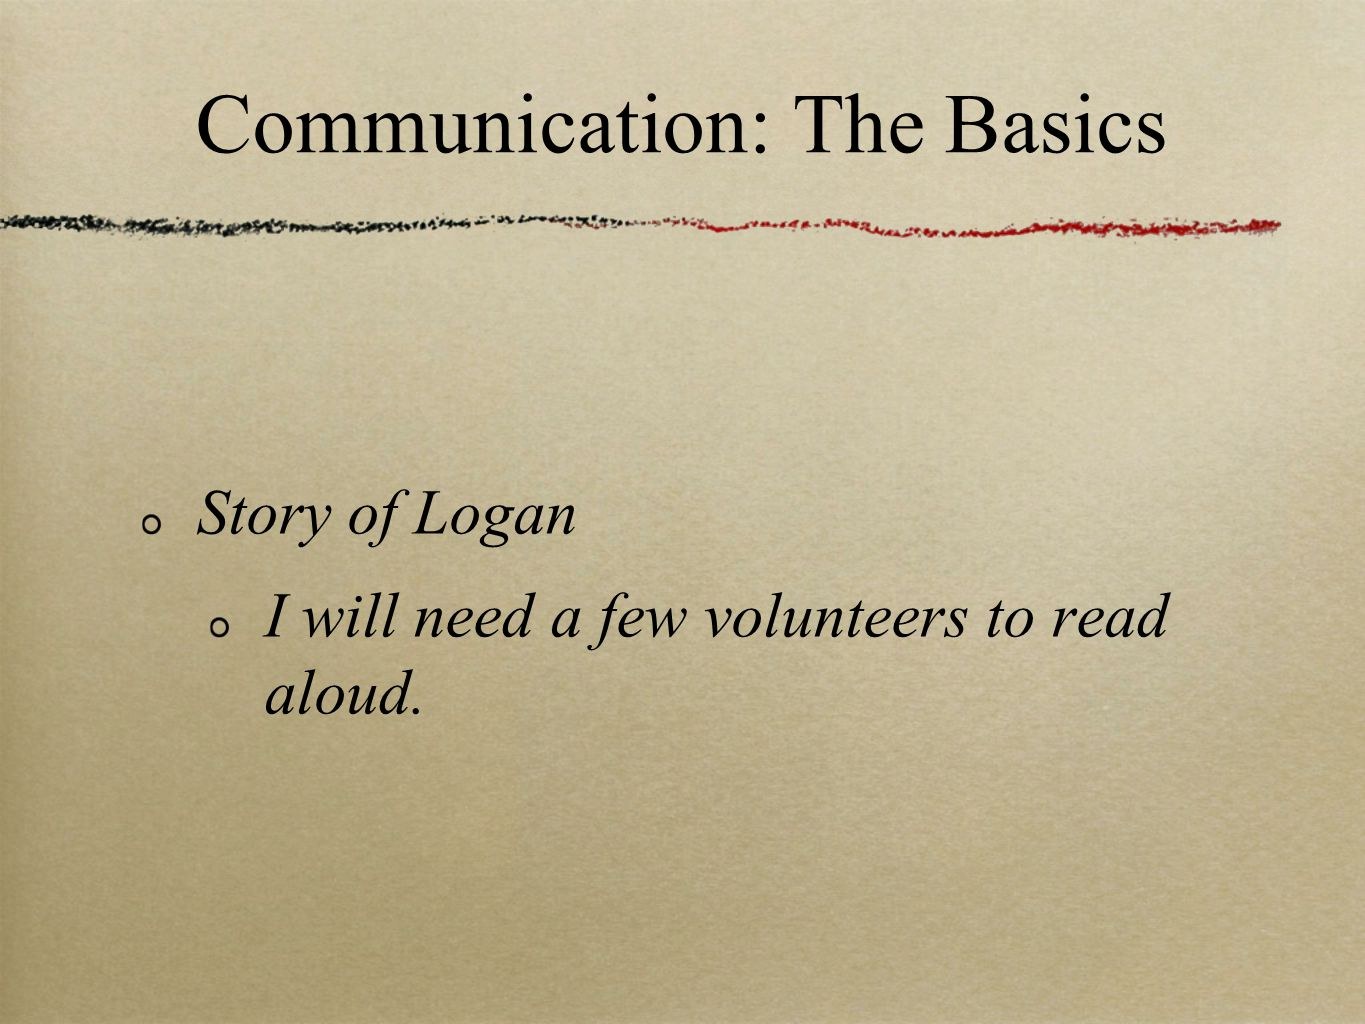 Communication: The Basics